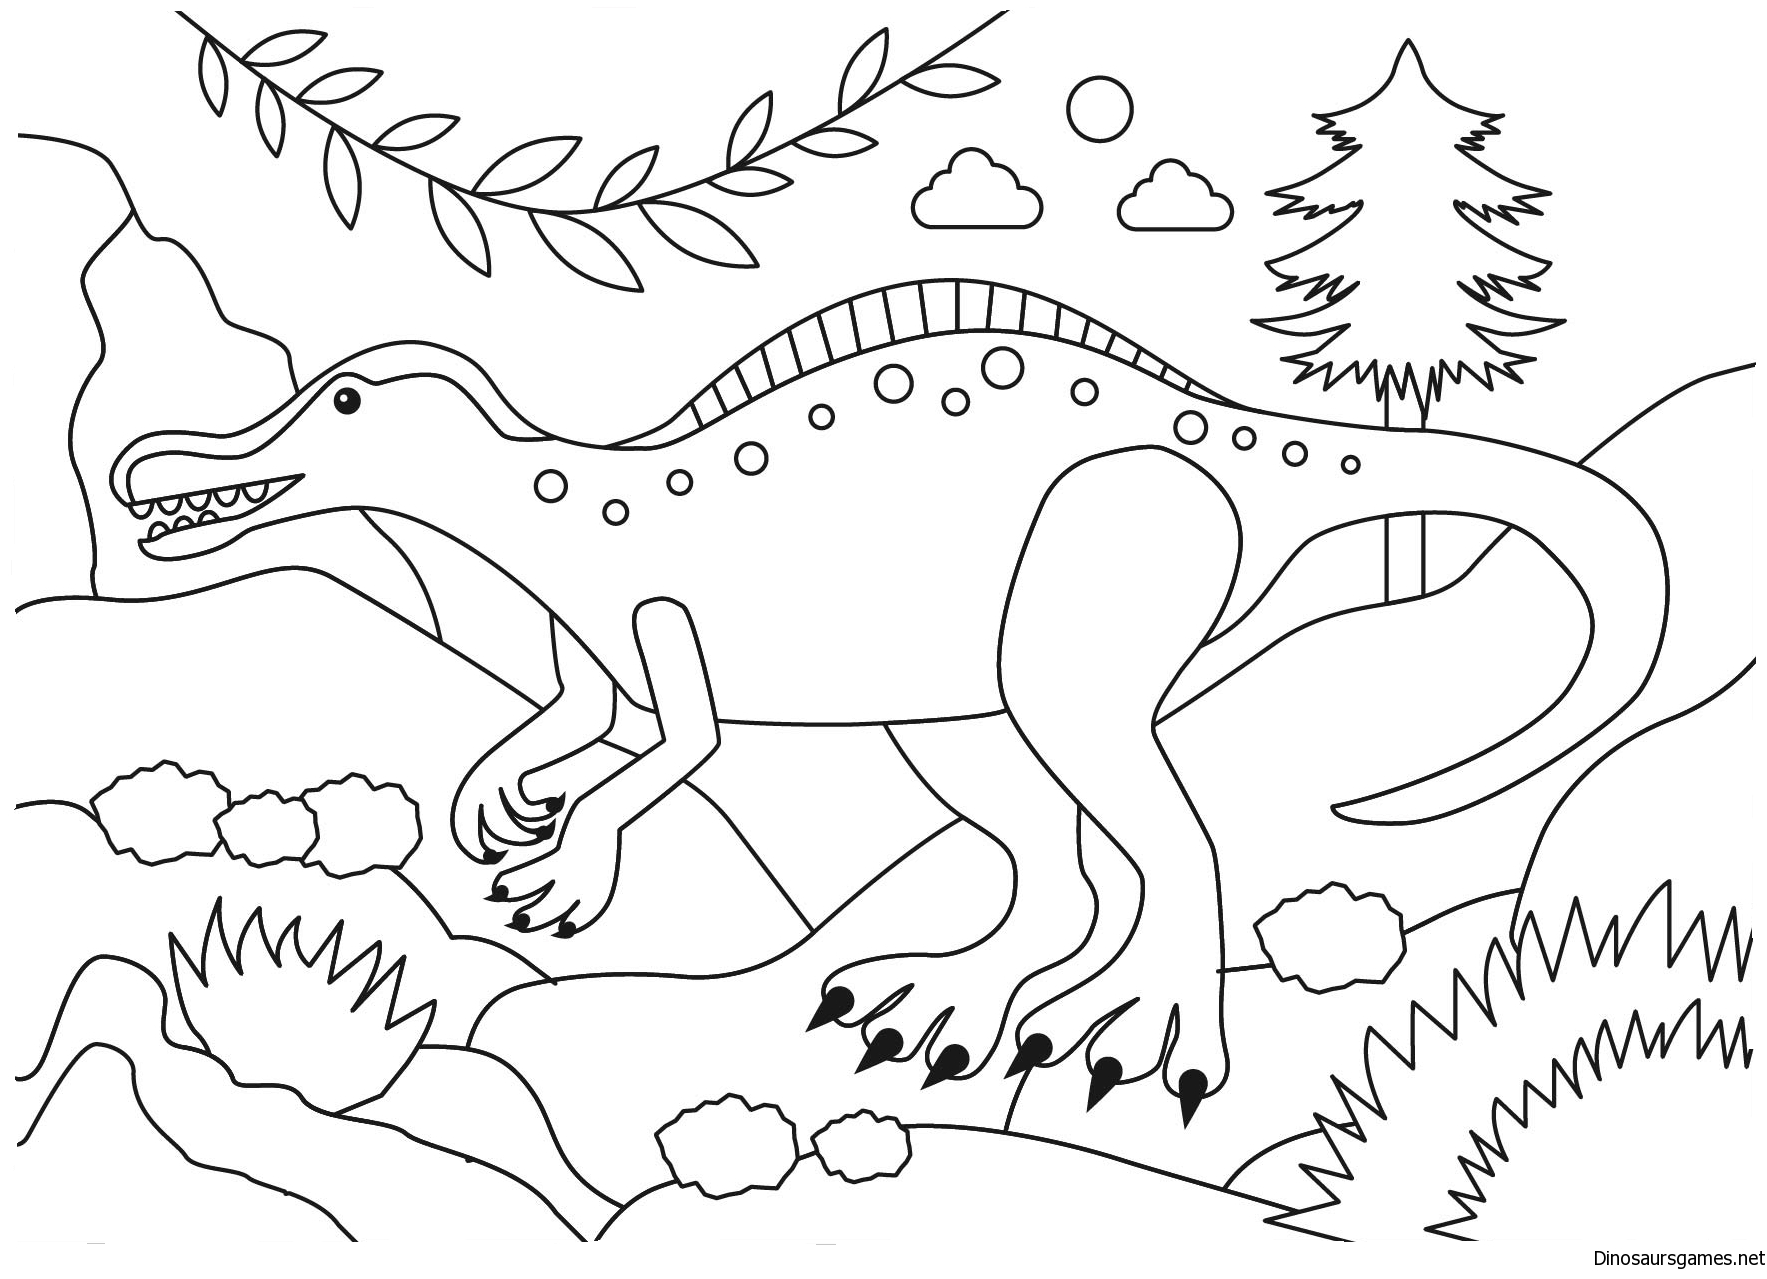 Suchomimus Dinosaur Coloring Page